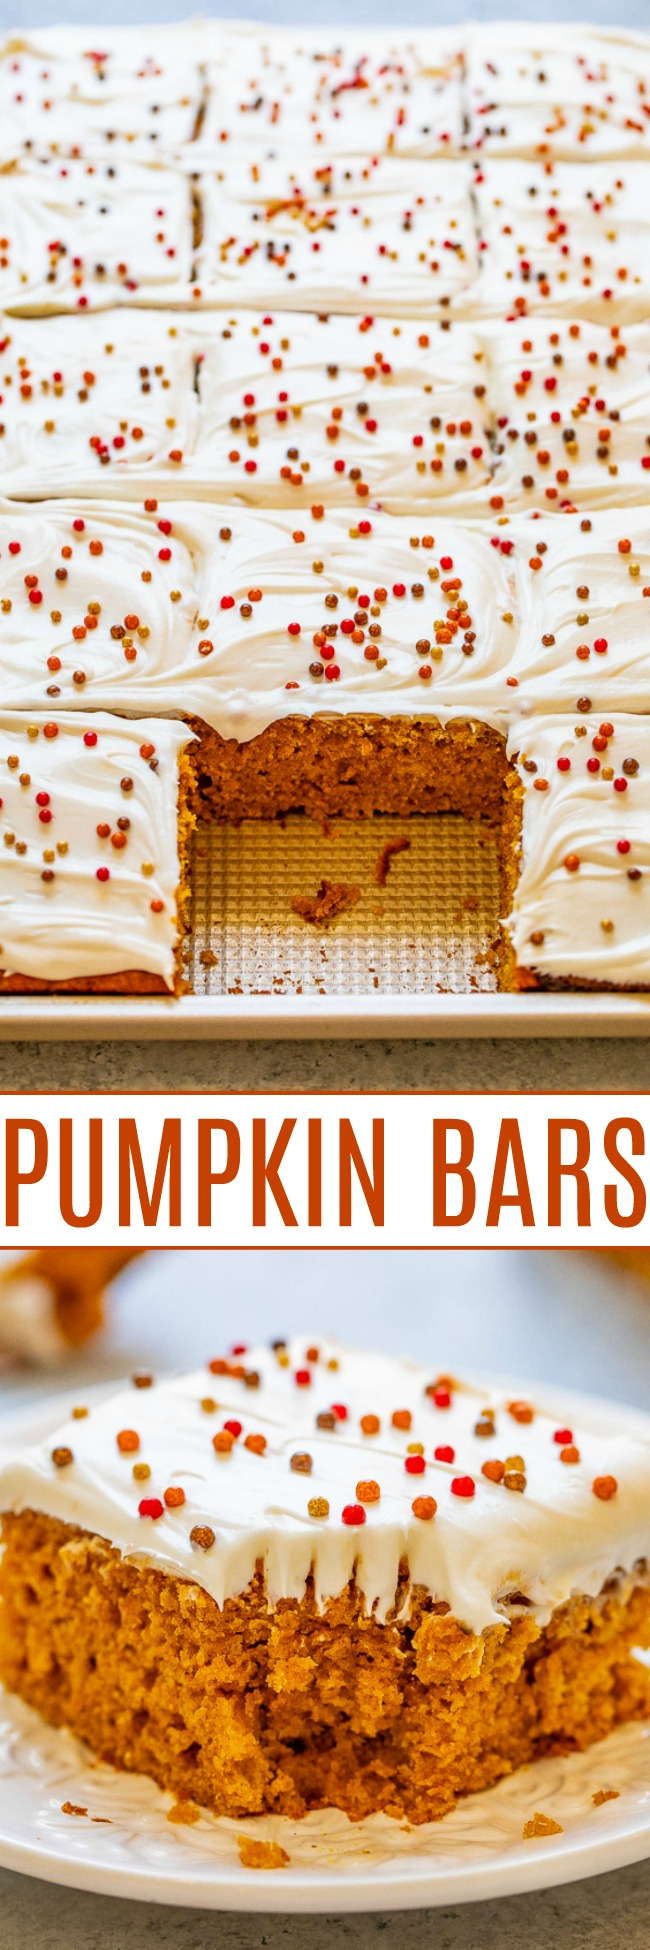 Pumpkin Bars with Cream Cheese Frosting - These super soft and moist pumpkin bars are the perfect EASY fall dessert!! Tangy cream cheese frosting is a wonderful complement to these perfectly pumpkin-spiced bars!!